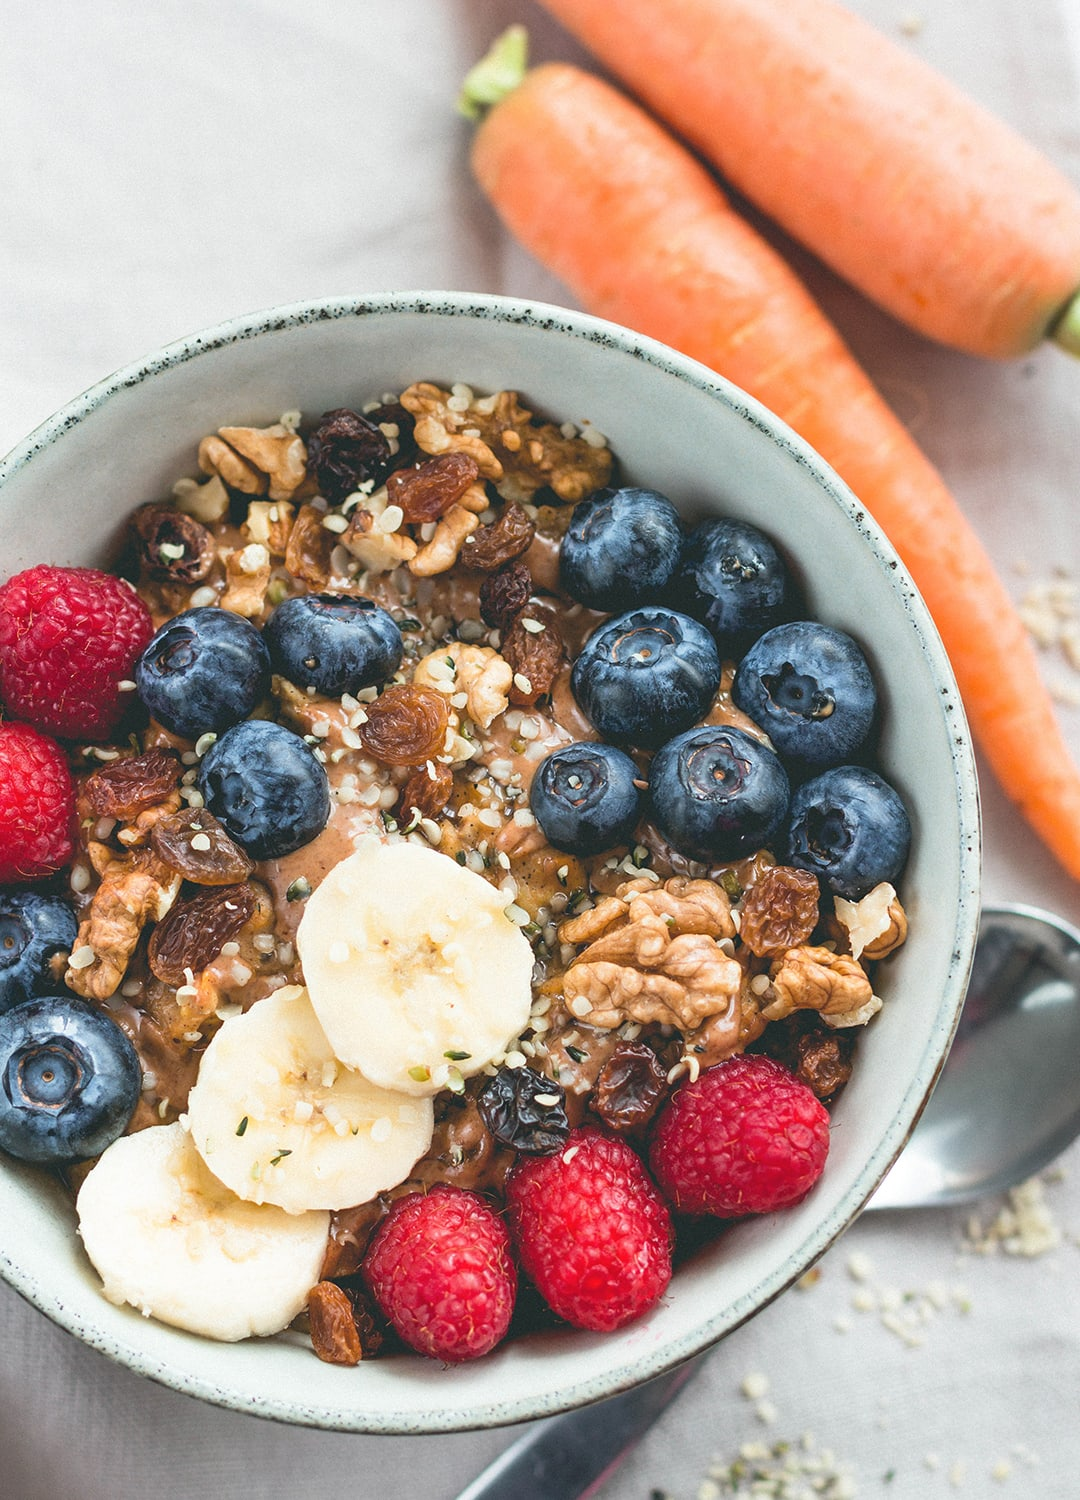 21 Oatmeal Recipes You Need To Try (vegan, gluten-free) - every flavor you can think of! With chocolate, berries, tropical fruit, chia seeds, acai, superfoods, spices, and remakes of famous desserts! Made with oats, buckwheat, or quinoa. Delicious! | thehealthfulideas.com